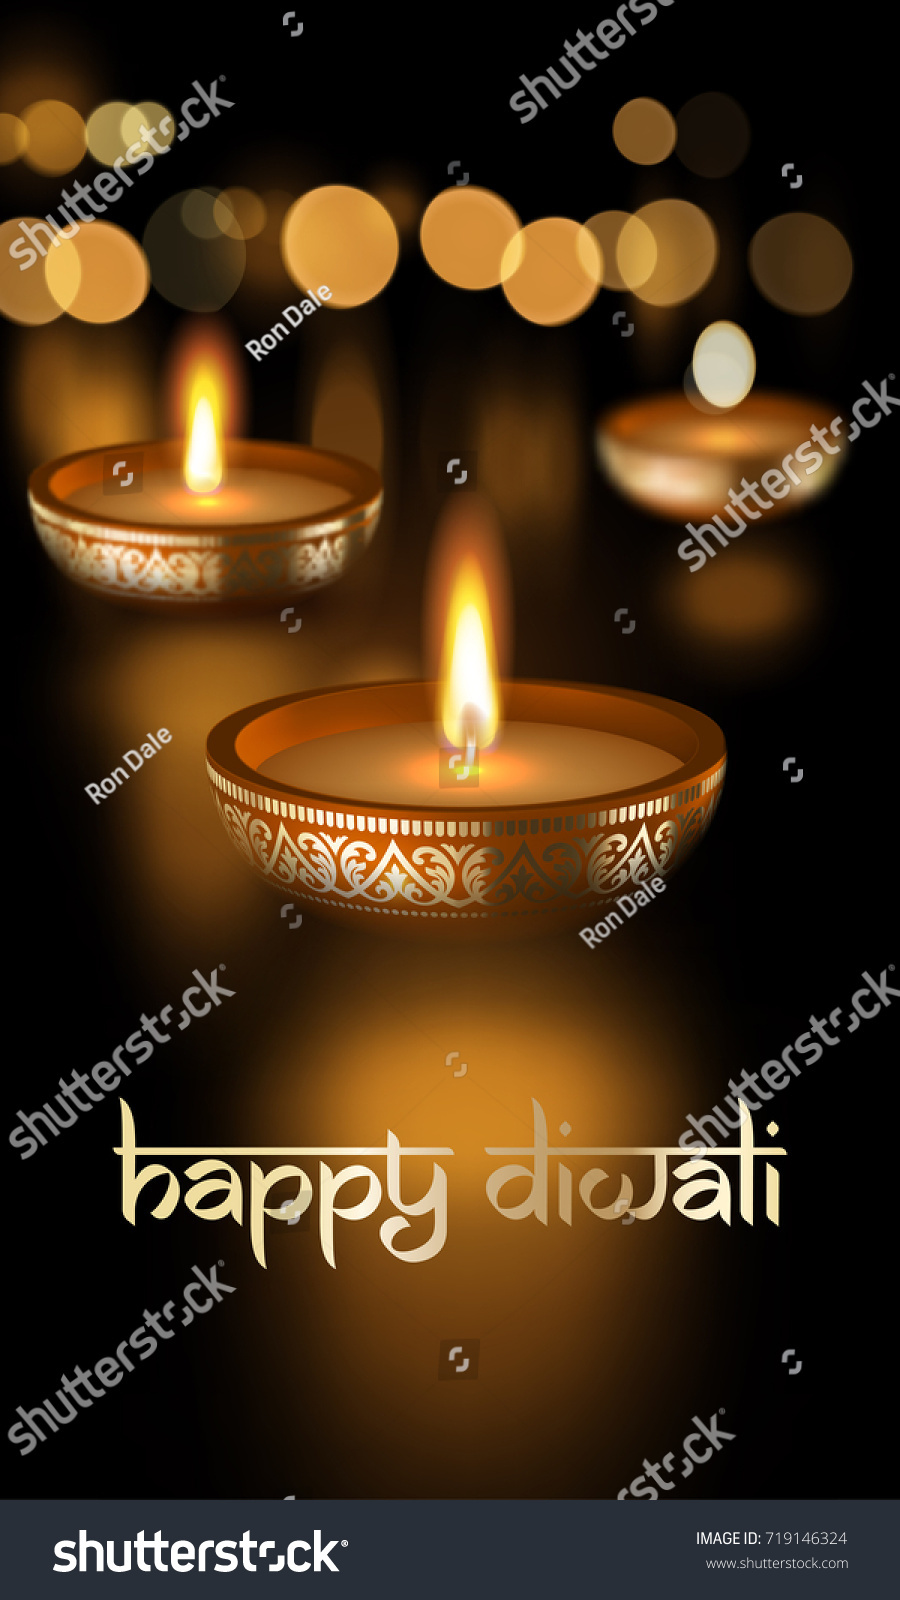 Happy diwali hindu festival lights holiday stock vector 719146324 happy diwali hindu festival of lights holiday greeting card template with indian sanskrit lettering text ornament kristyandbryce Gallery